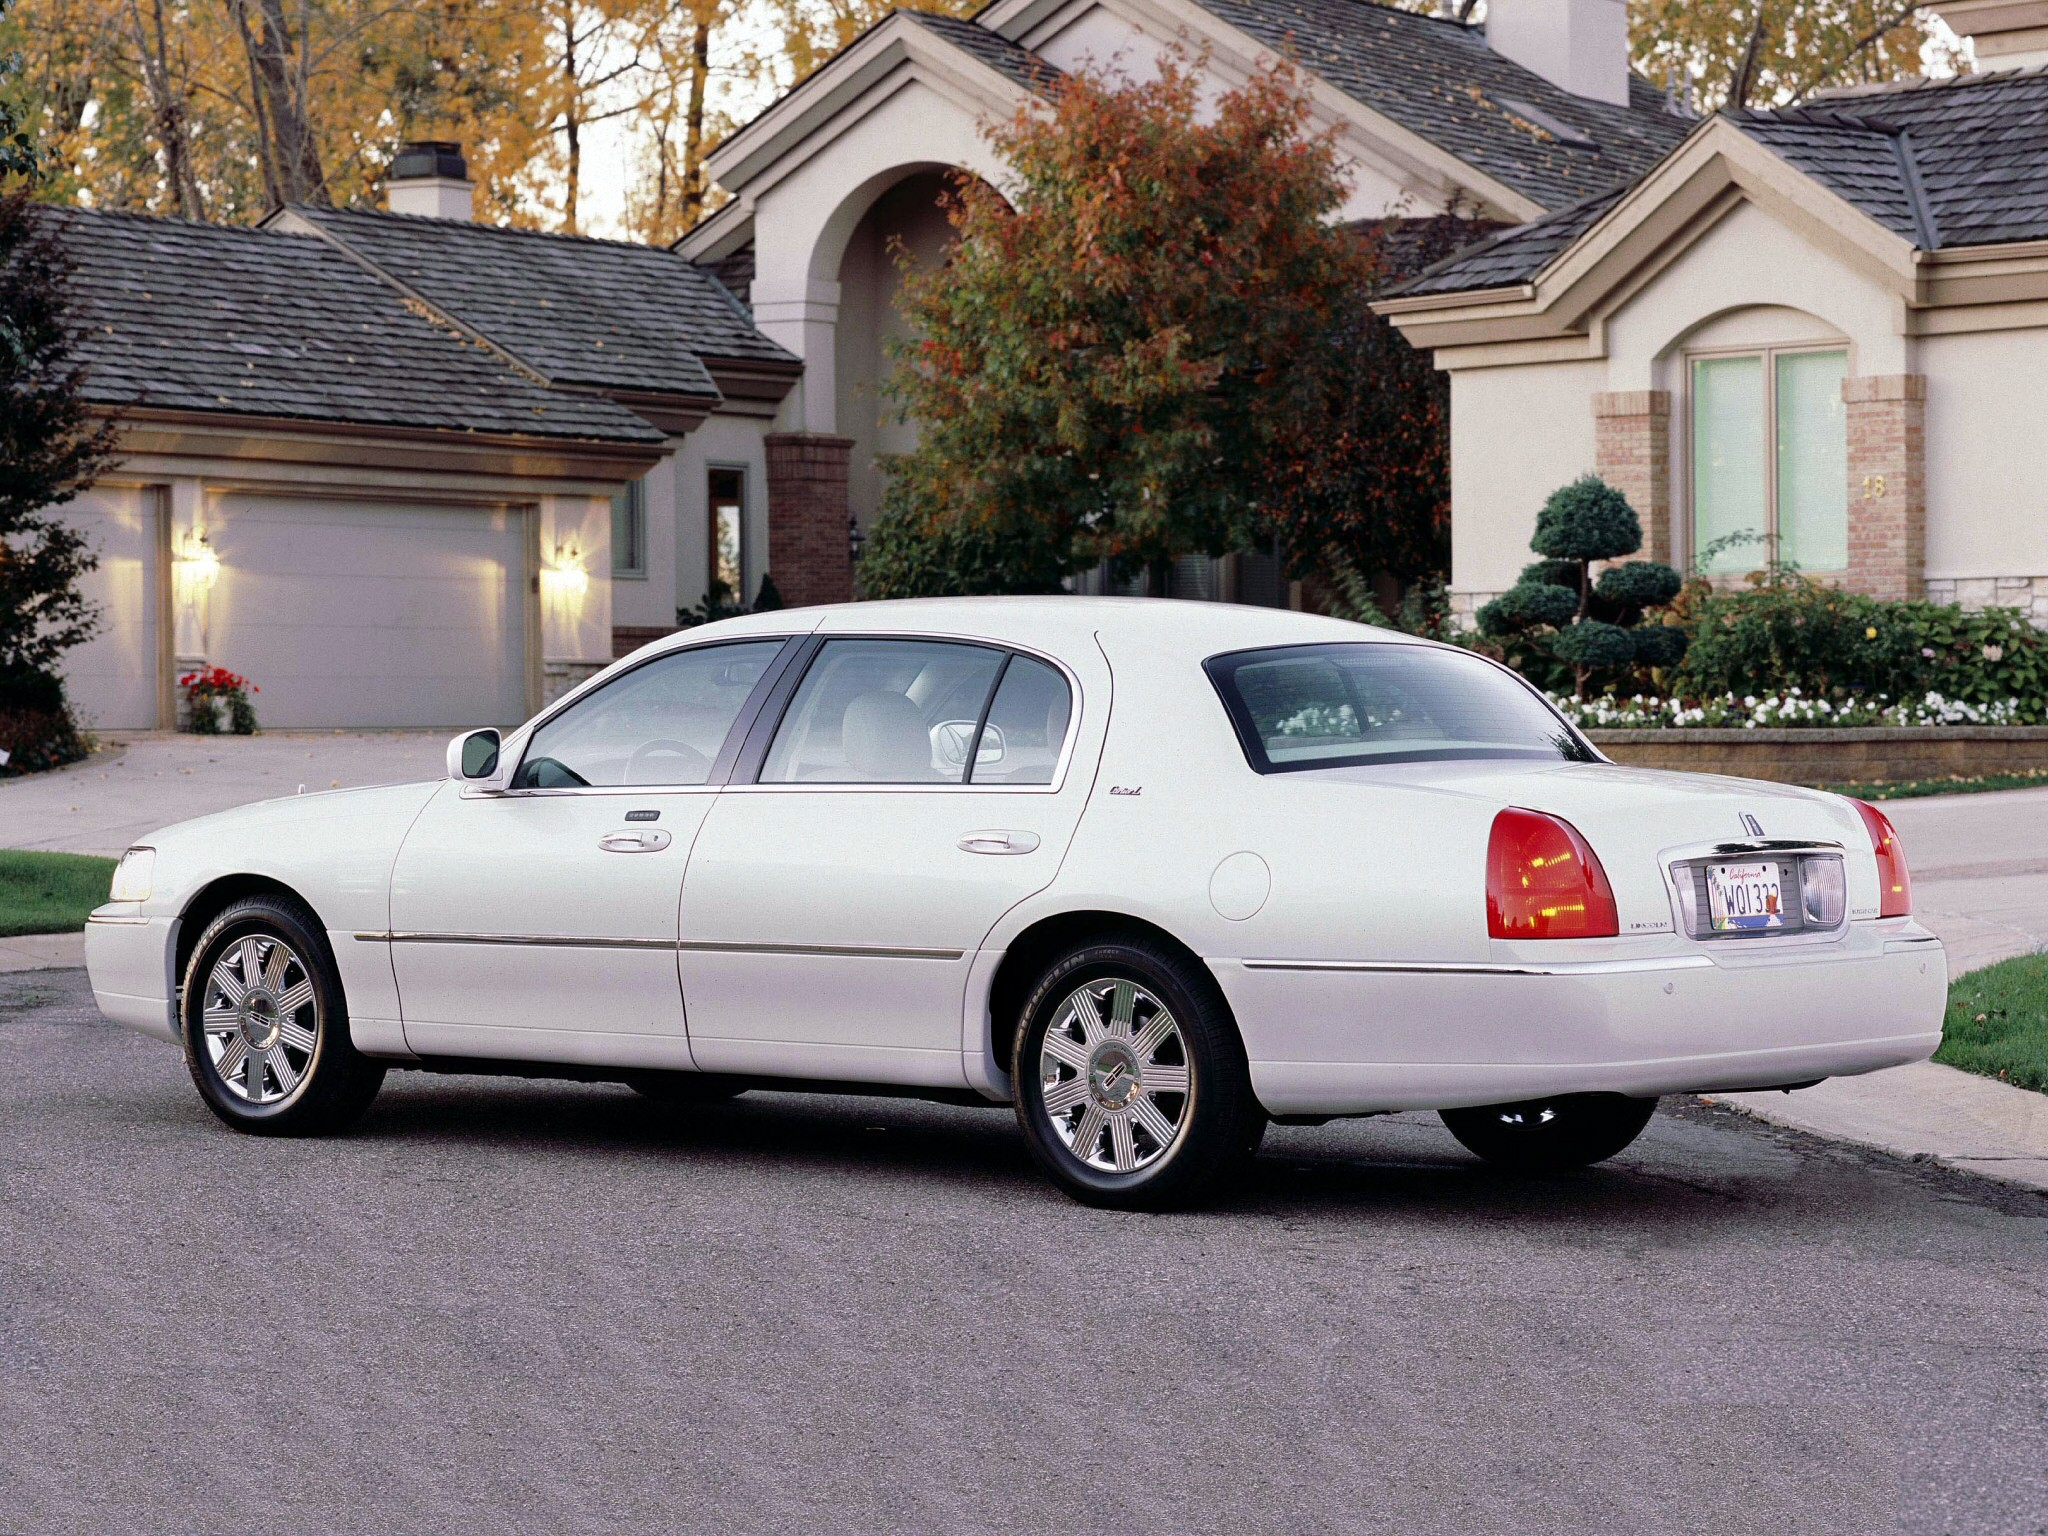 Lincoln town Car Body Parts Diagram Oc town Car Has Been Providing town Car Of Lincoln town Car Body Parts Diagram